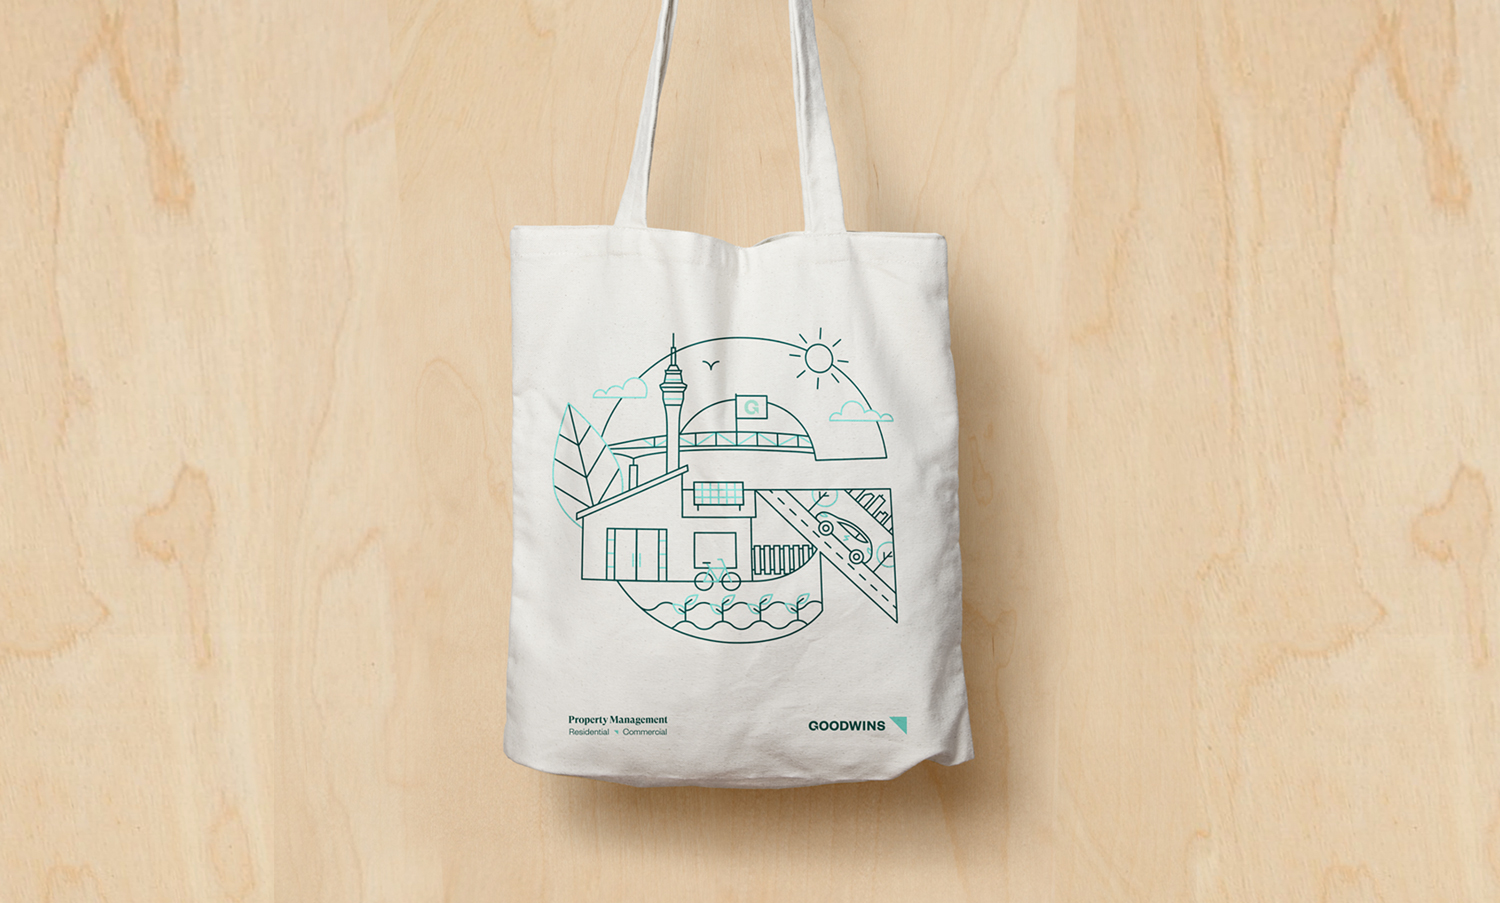 Goodwins Tote Bag Design